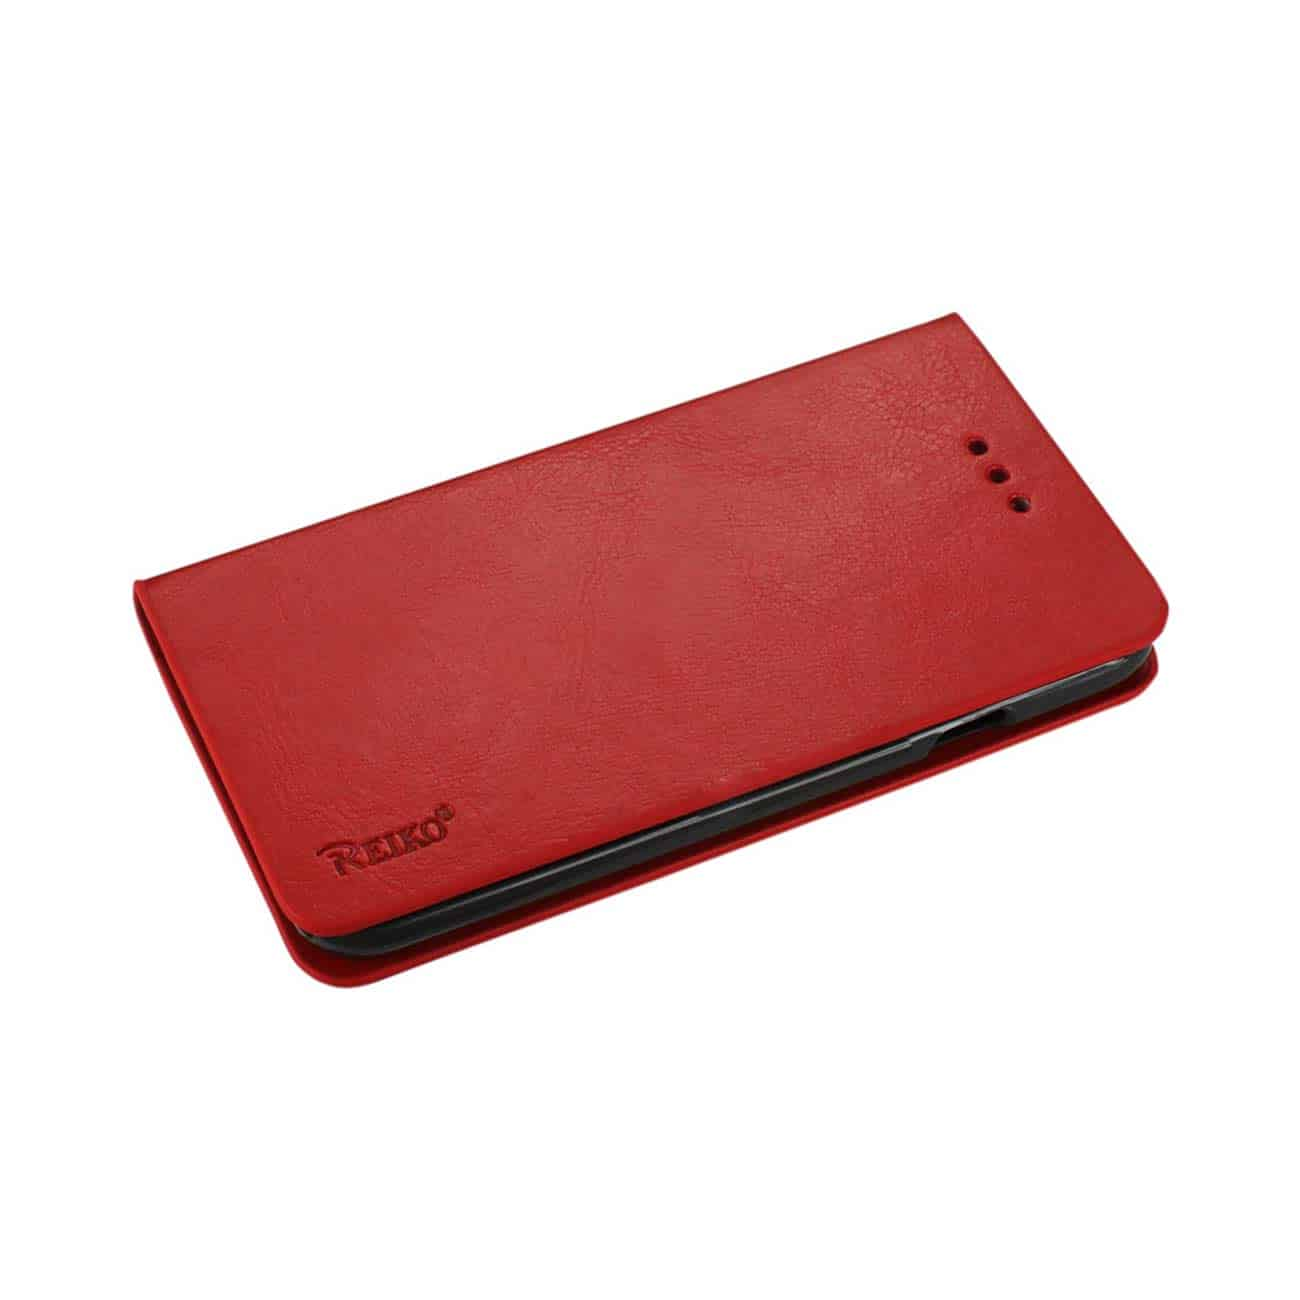 IPHONE 6 PLUS FLIP FOLIO CASE WITH CARD HOLDER IN RED